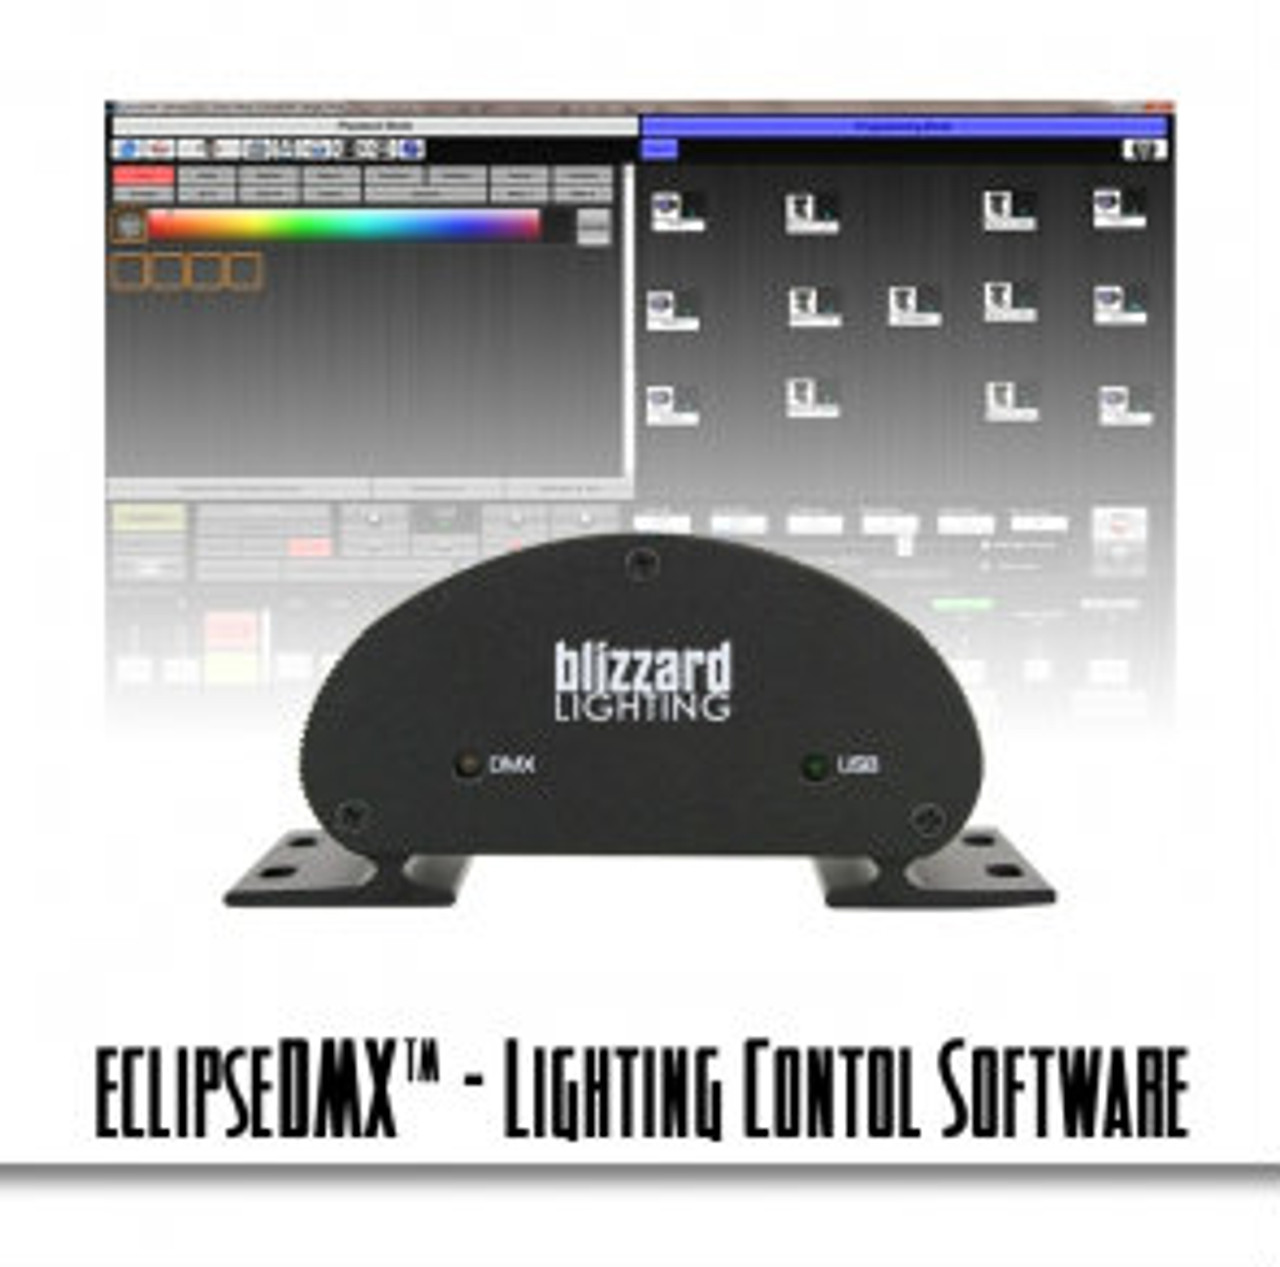 Blizzard Eclipse DMX Touch Screen Lighting Control Software for DJs